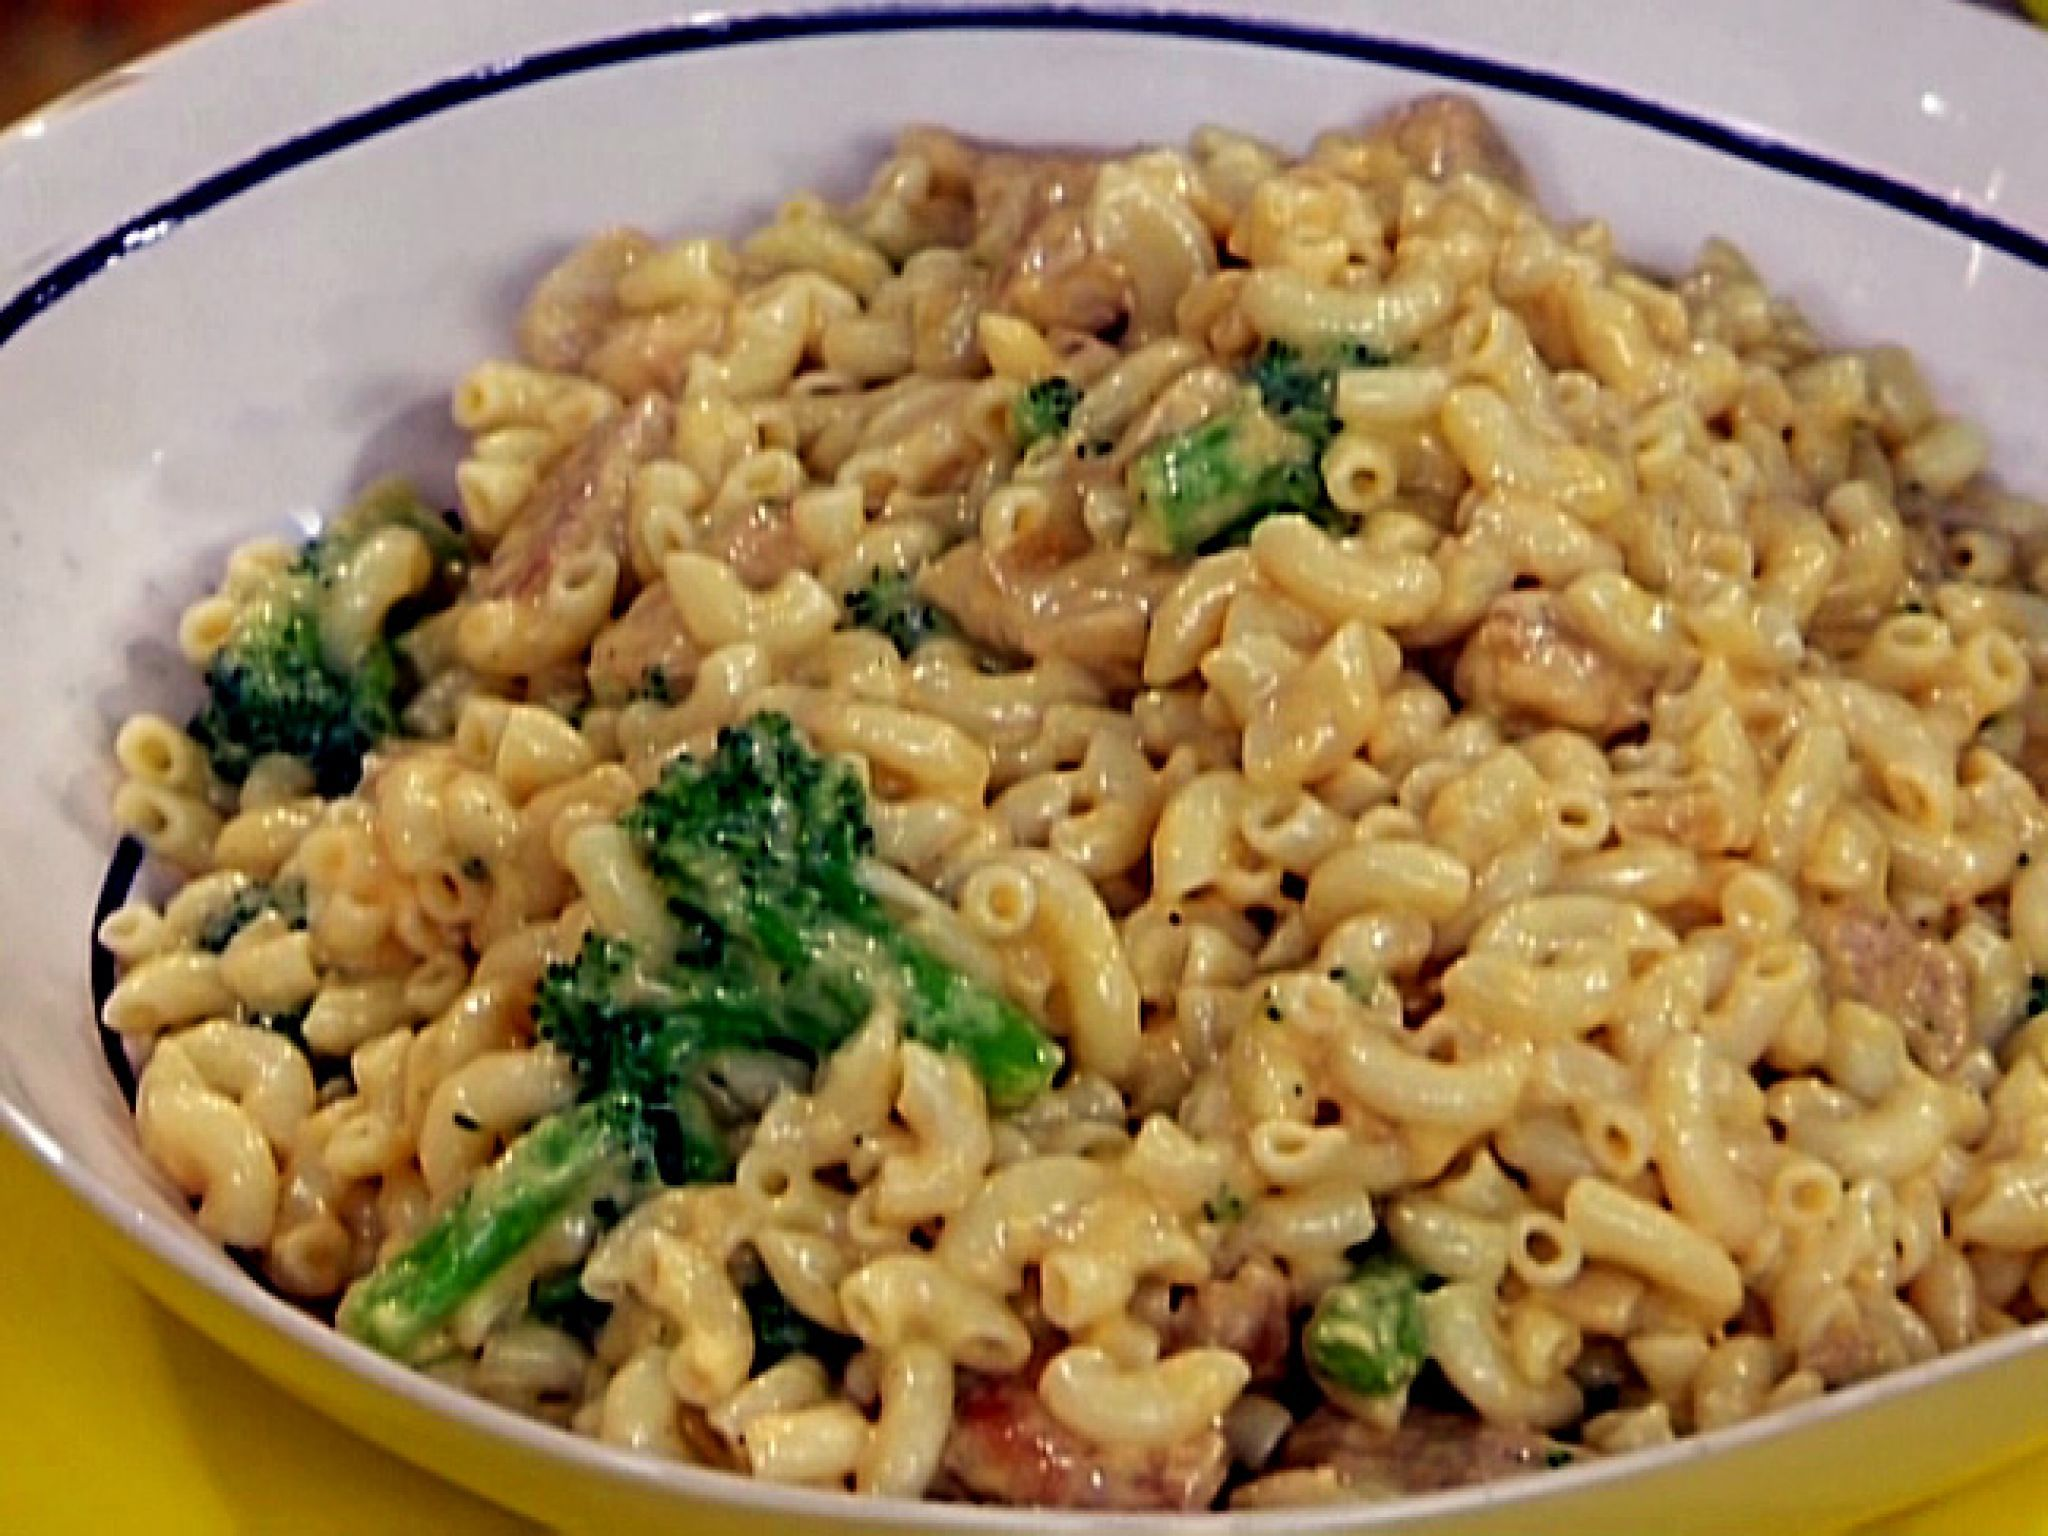 Farfalle with chicken and broccoli recipes